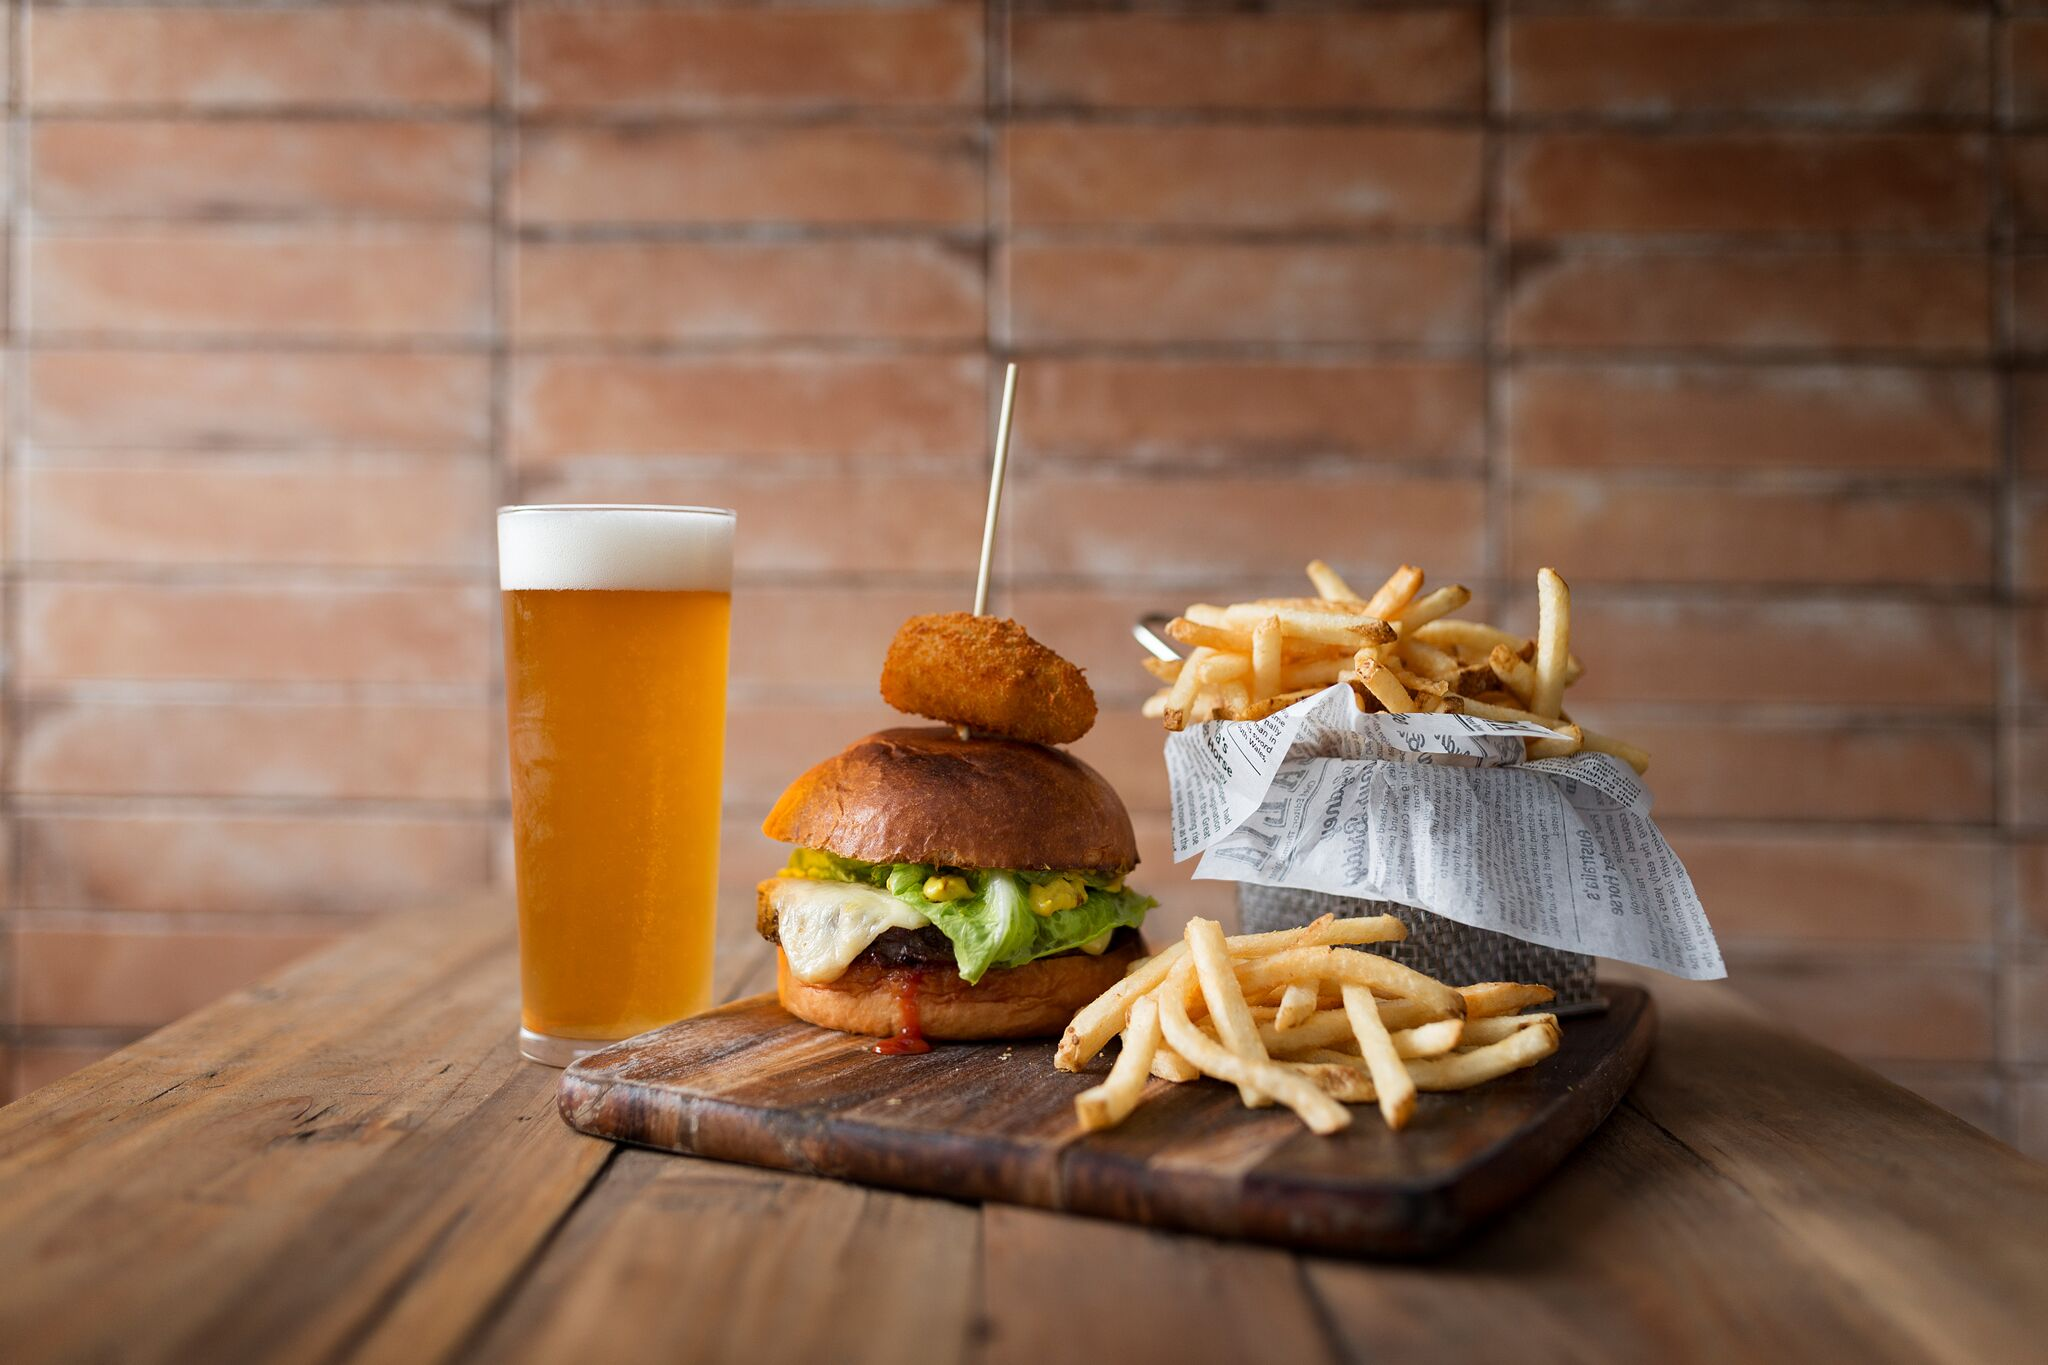 Happy hour food - Cheeseburger and fries paired with a glass of lite beer